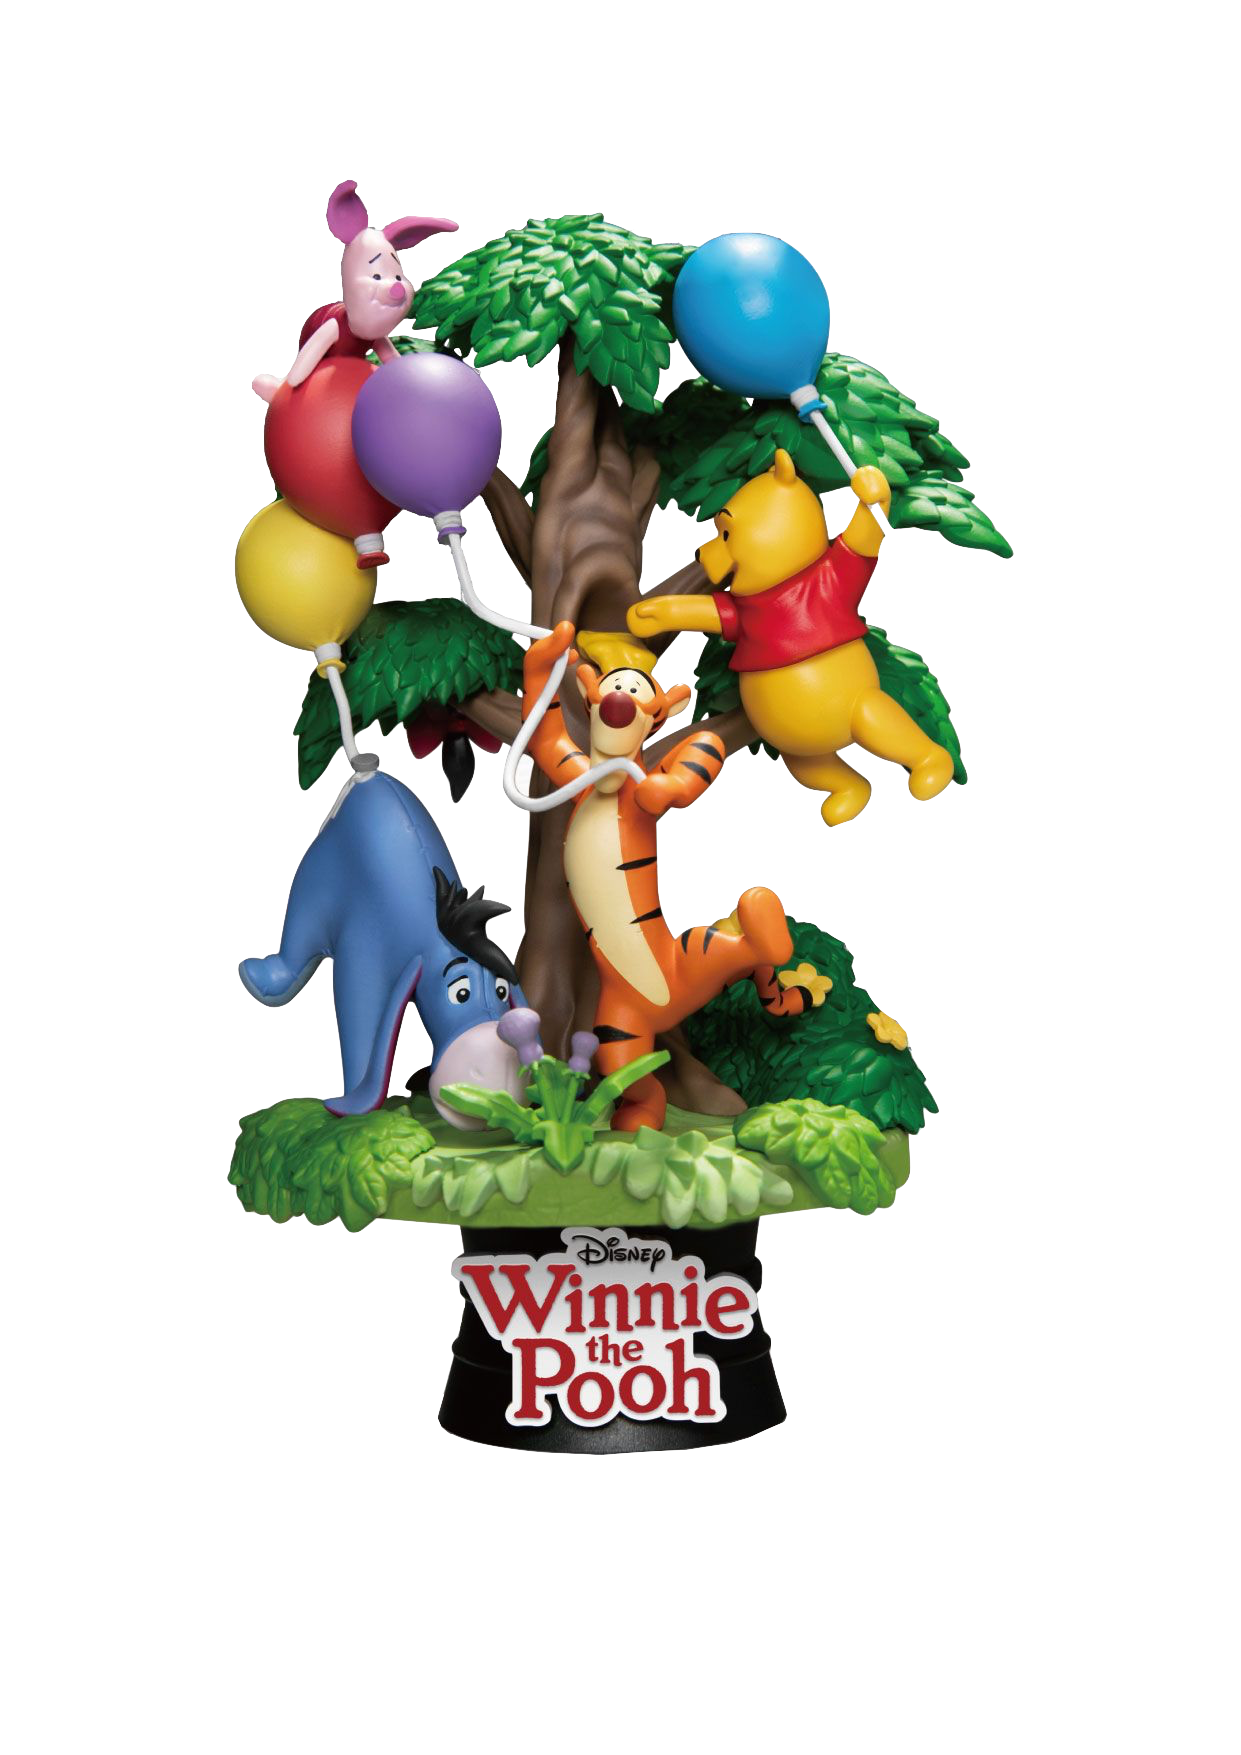 beast-kingdom-toys-disney-winnie-the-pooh-winnie-and-friends-pvc-diorama-toyslife